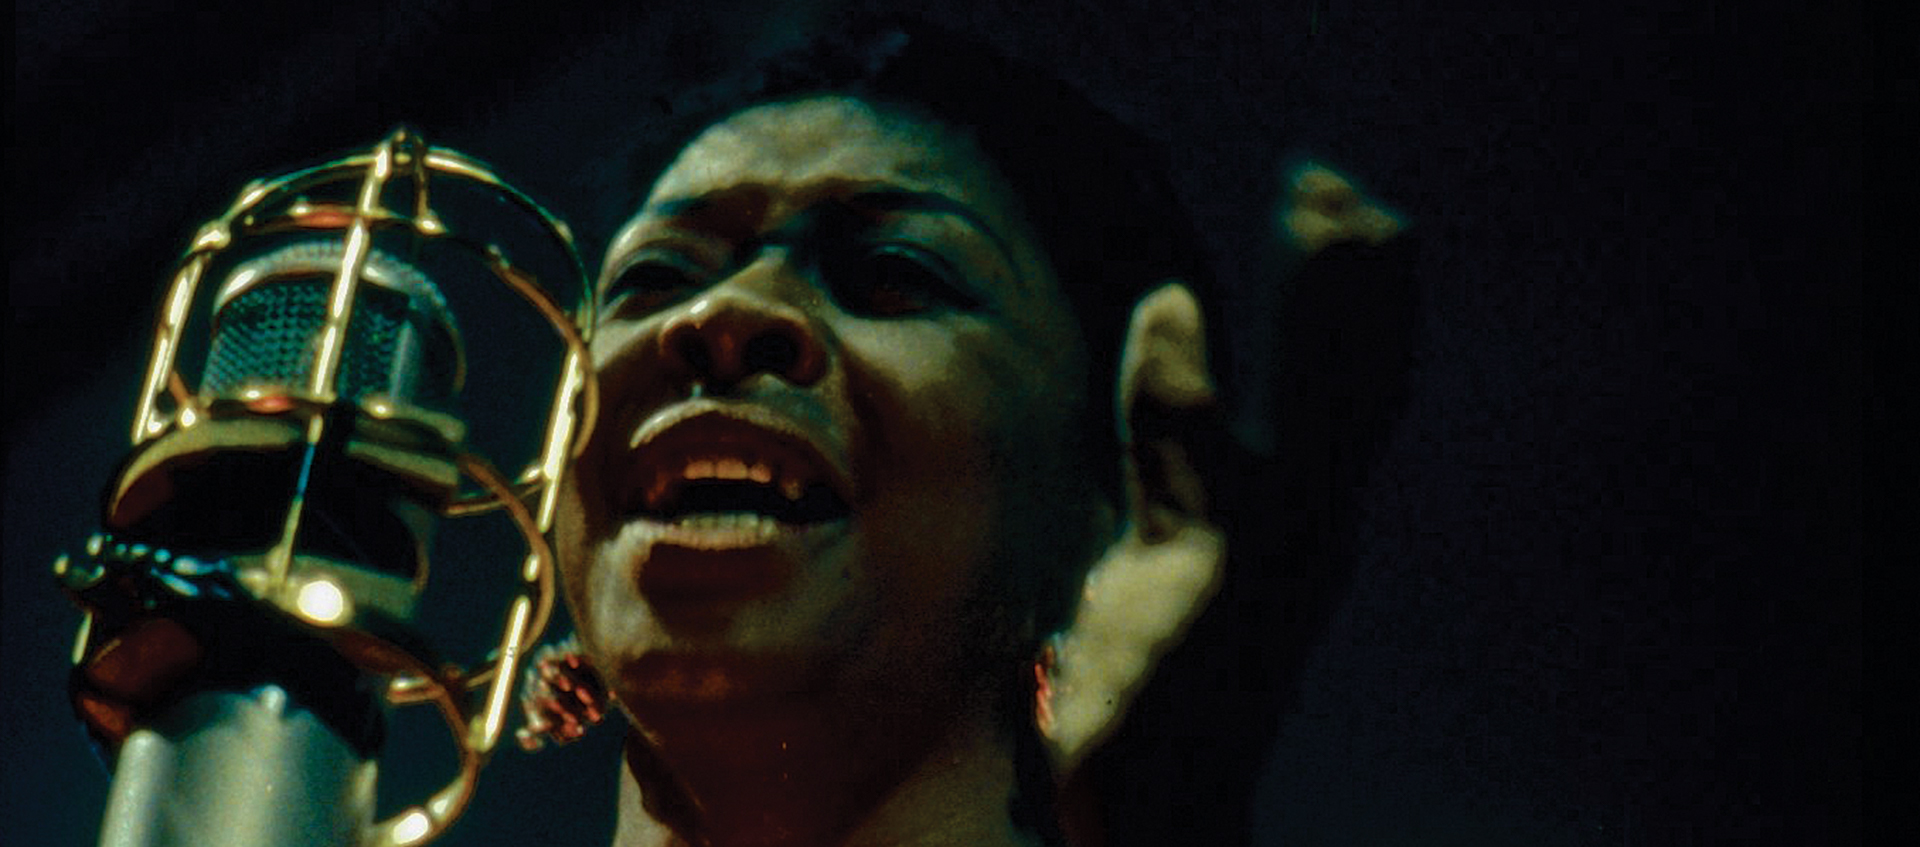 Dinah Washington, seen from neck up, sings into a large bullet microphone in a scene from the documentary Jazz on a Summer's Day